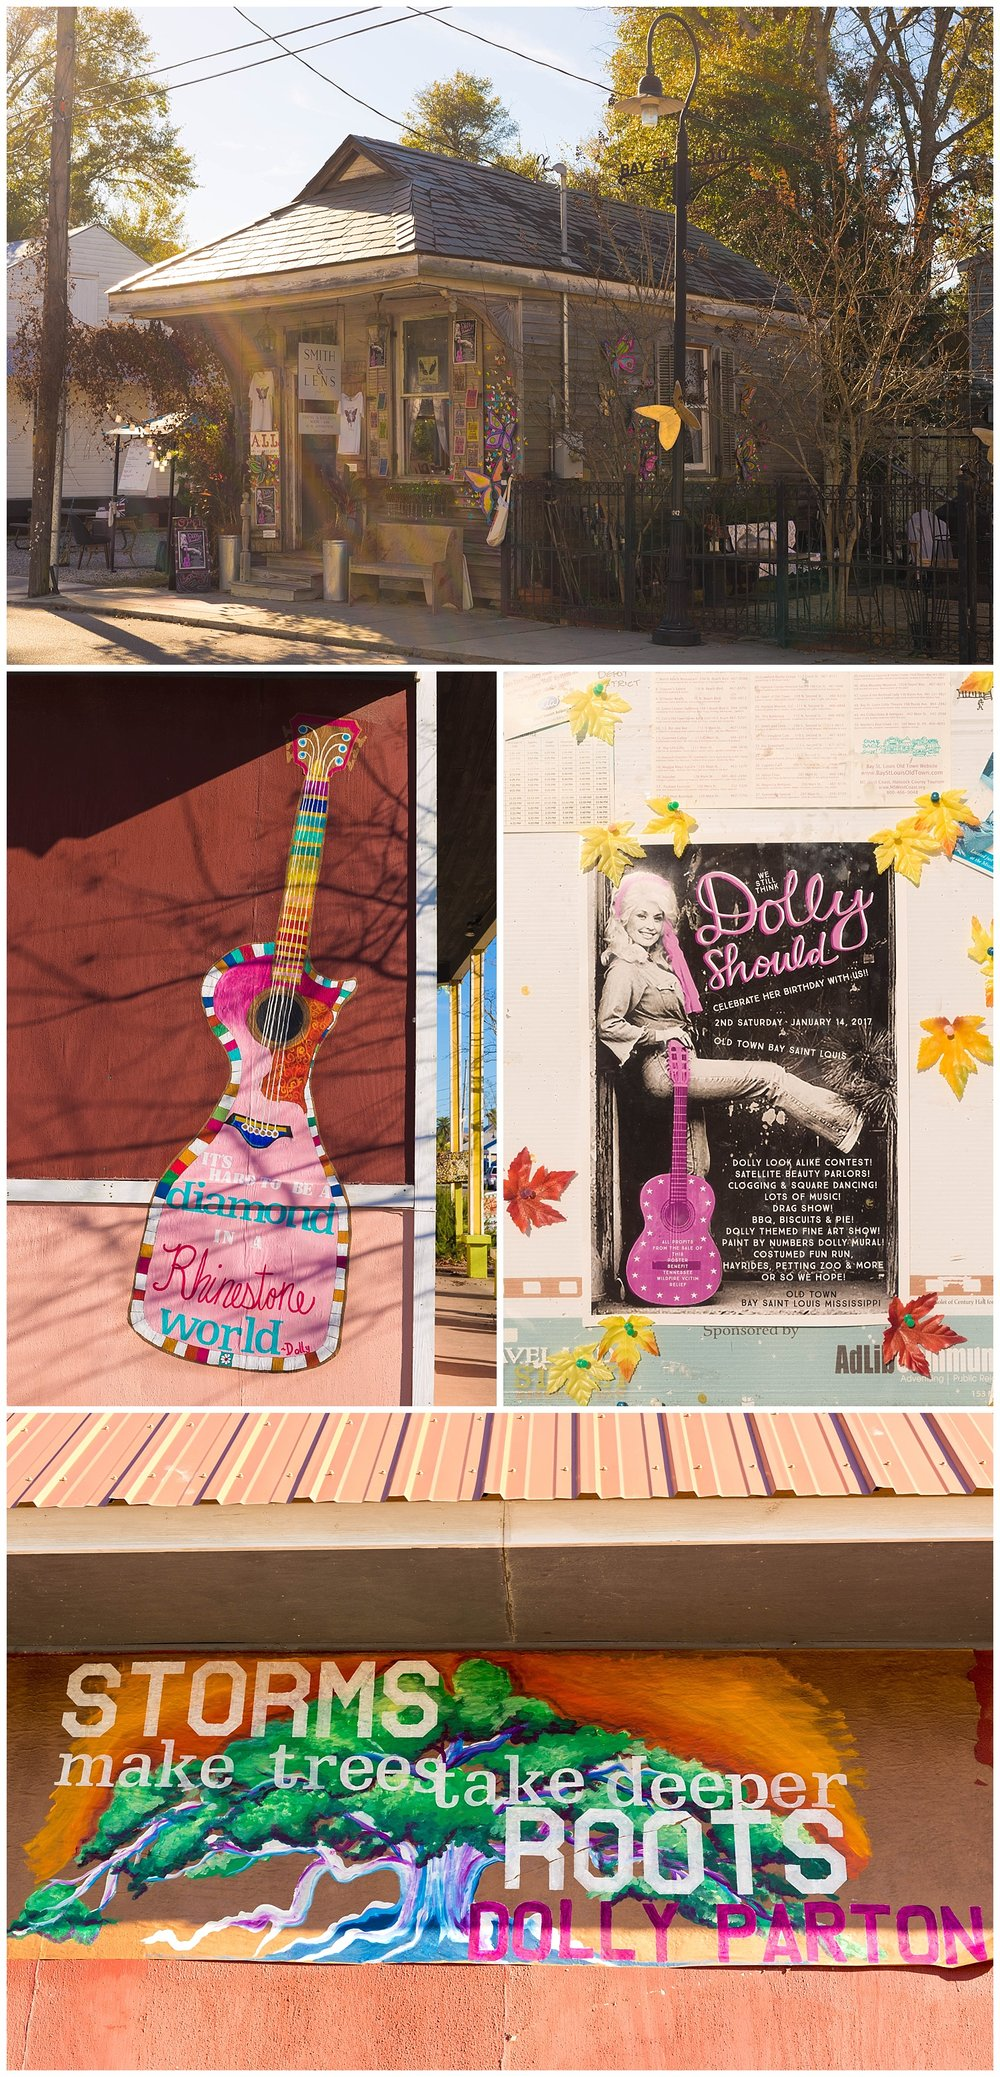 Dolly Parton inspired art in Bay St. Louis, Mississippi